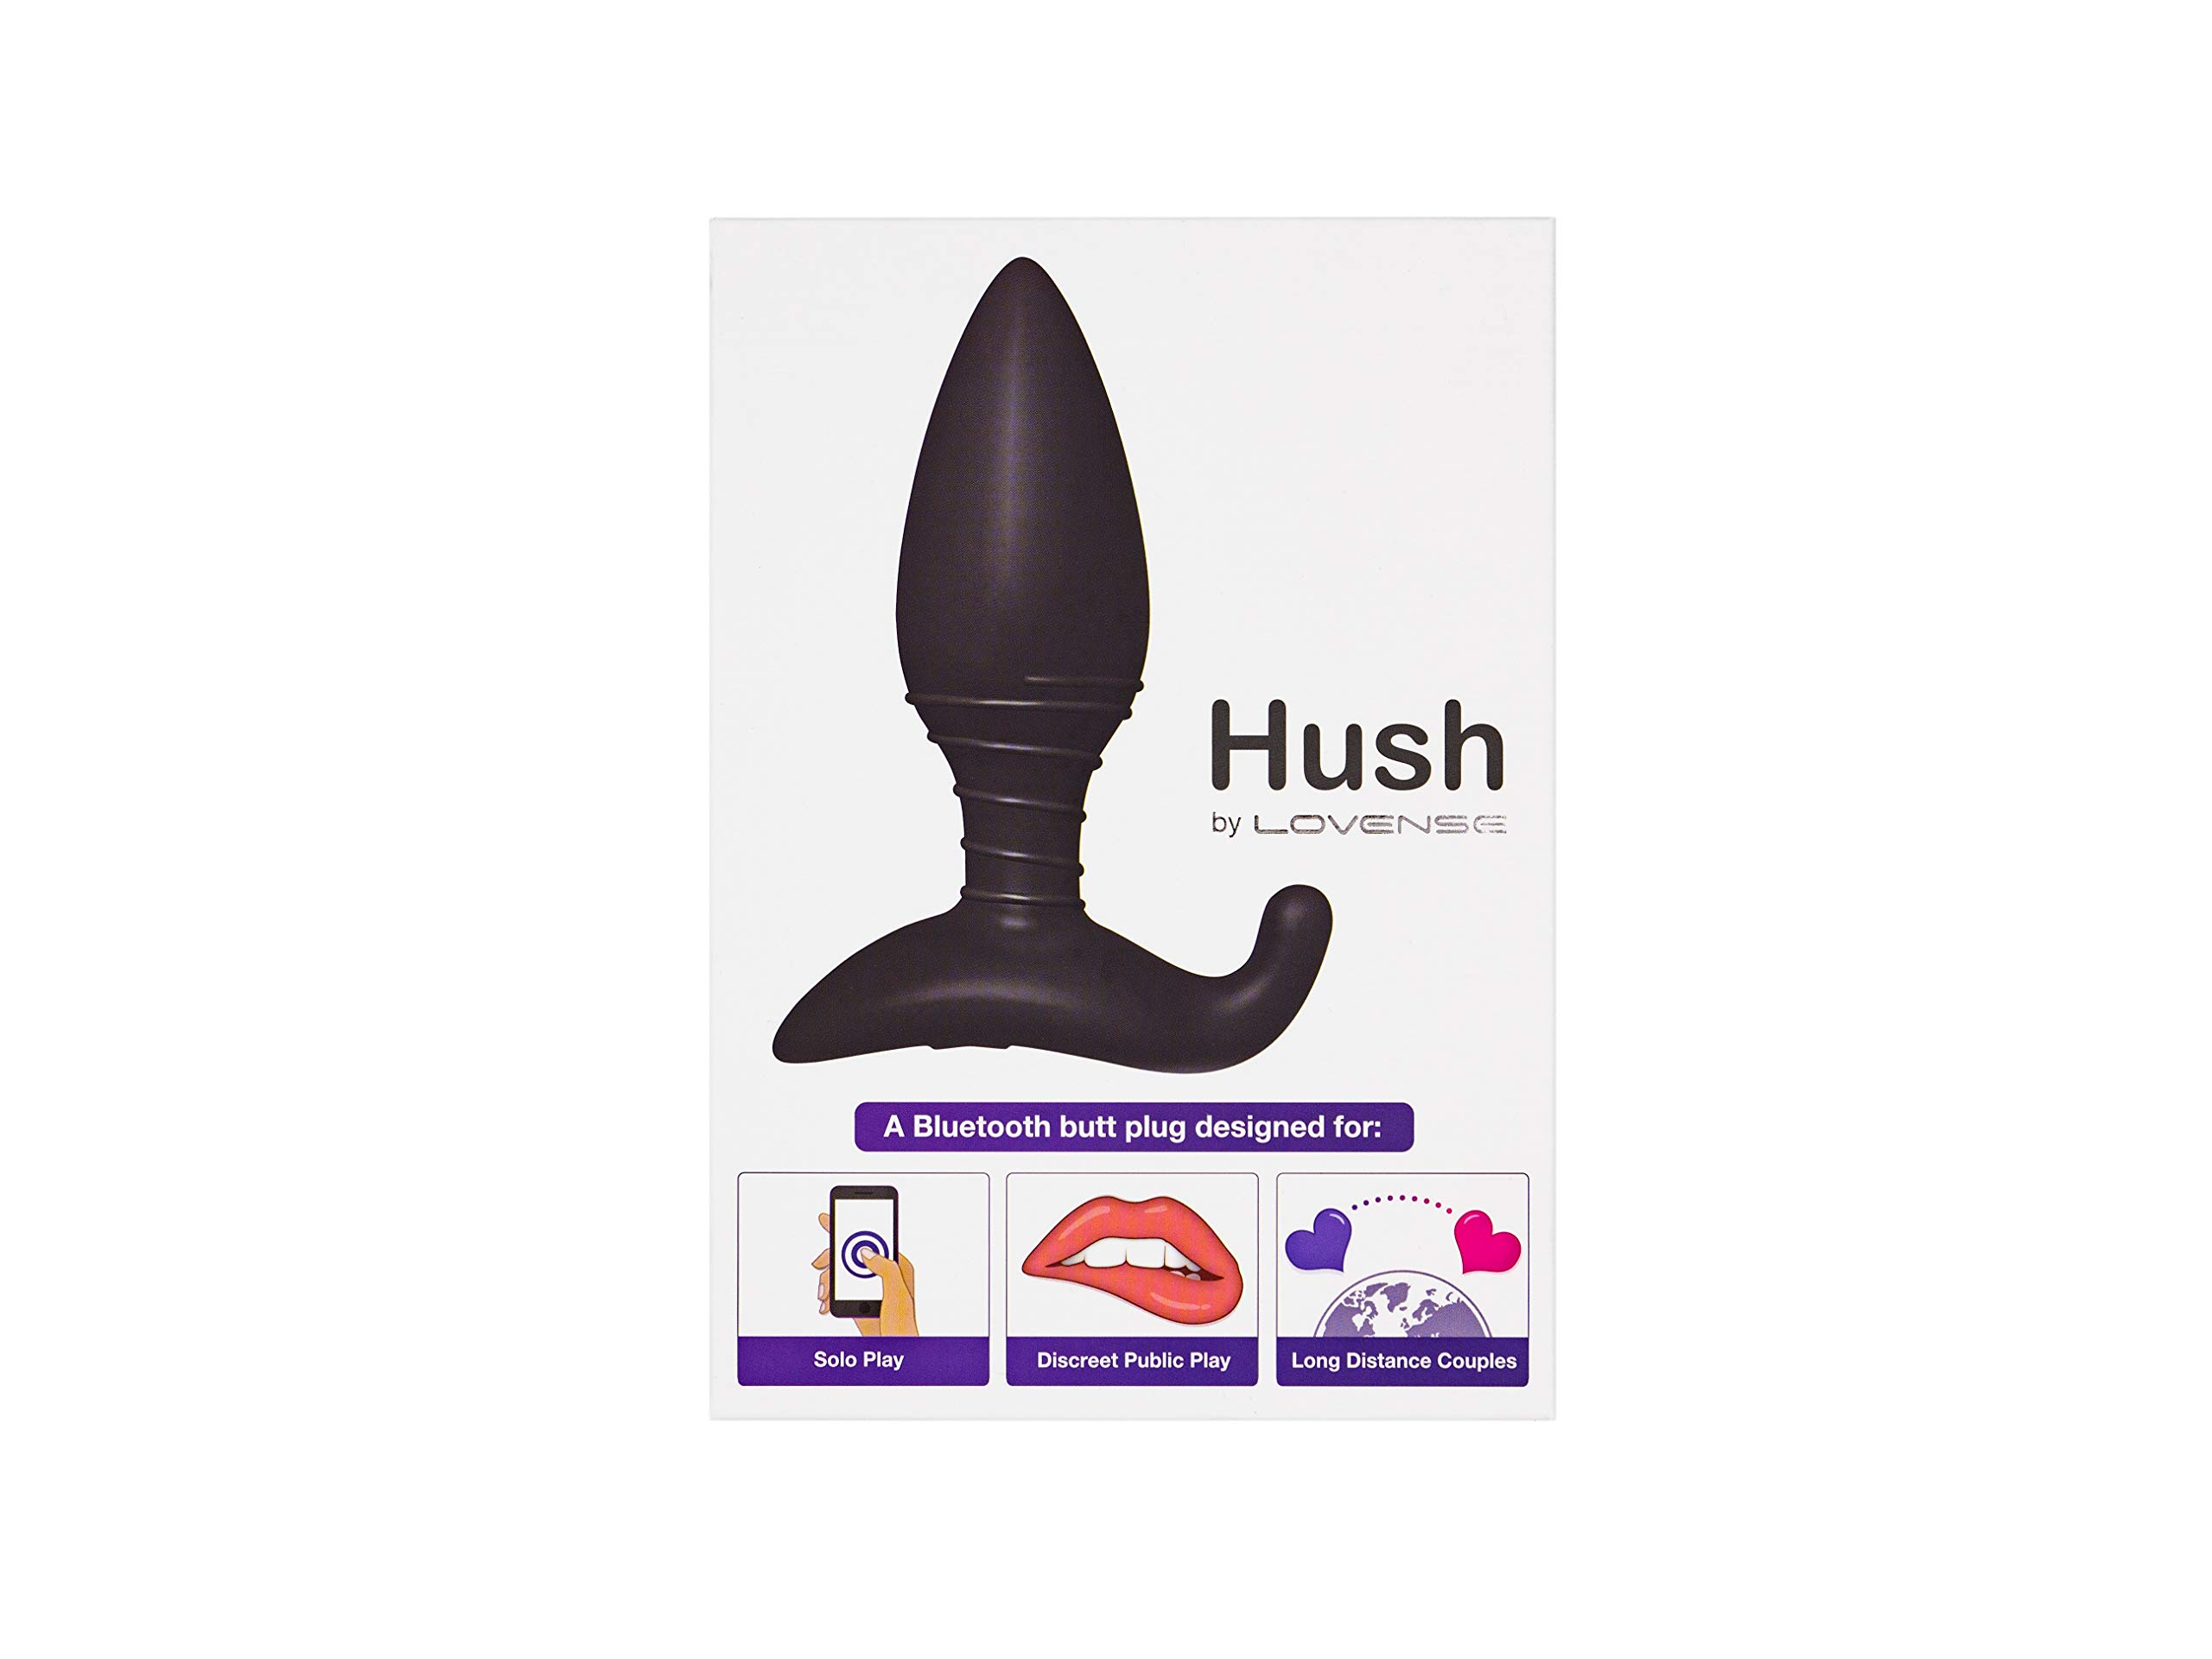 LOVENSE Hush Butt Plug (1.5inch), Powerful & Intense Vibrating Sex Toy for Men & Women, Smartphone Wireless Bluetooth Connectivity, Waterproof and Rechargeable by LOVENSE (Image #5)